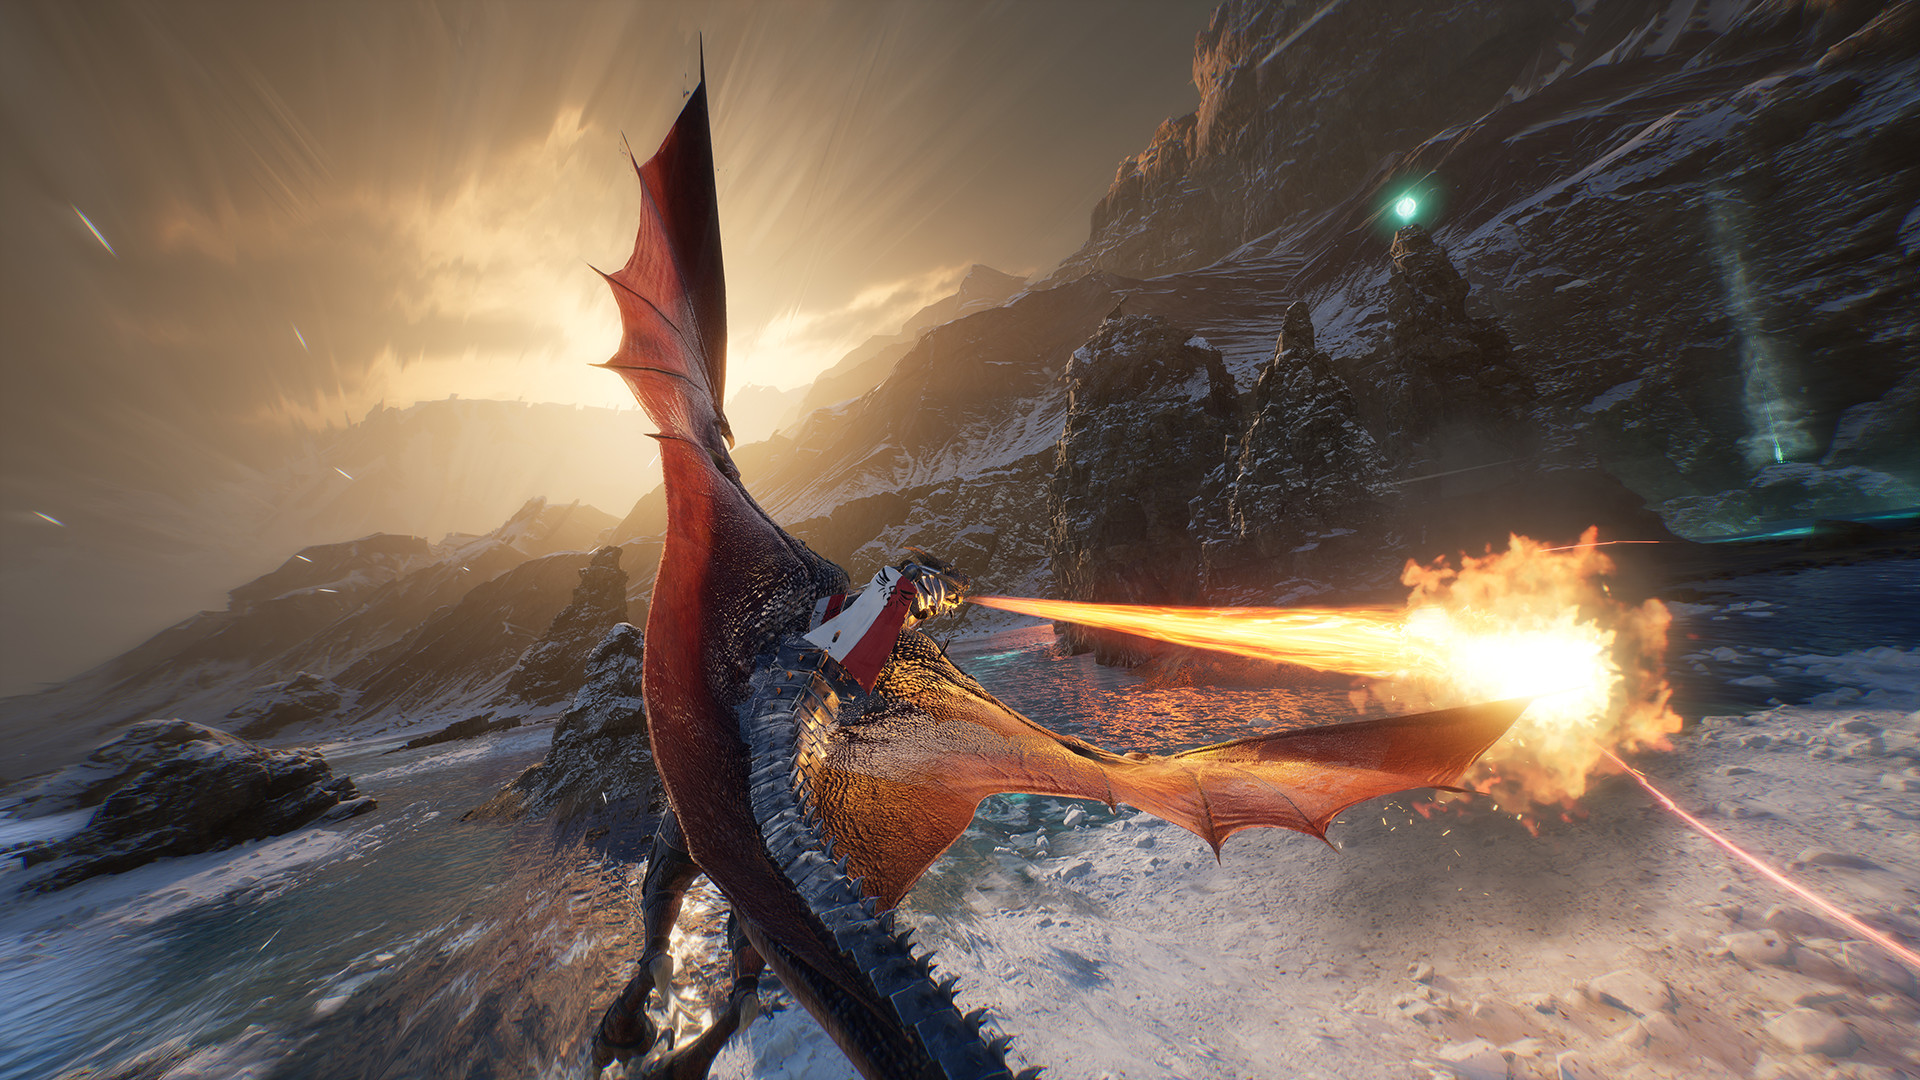 a dragon blasts an adversary with fire breath over winter skies in a fantasy setting